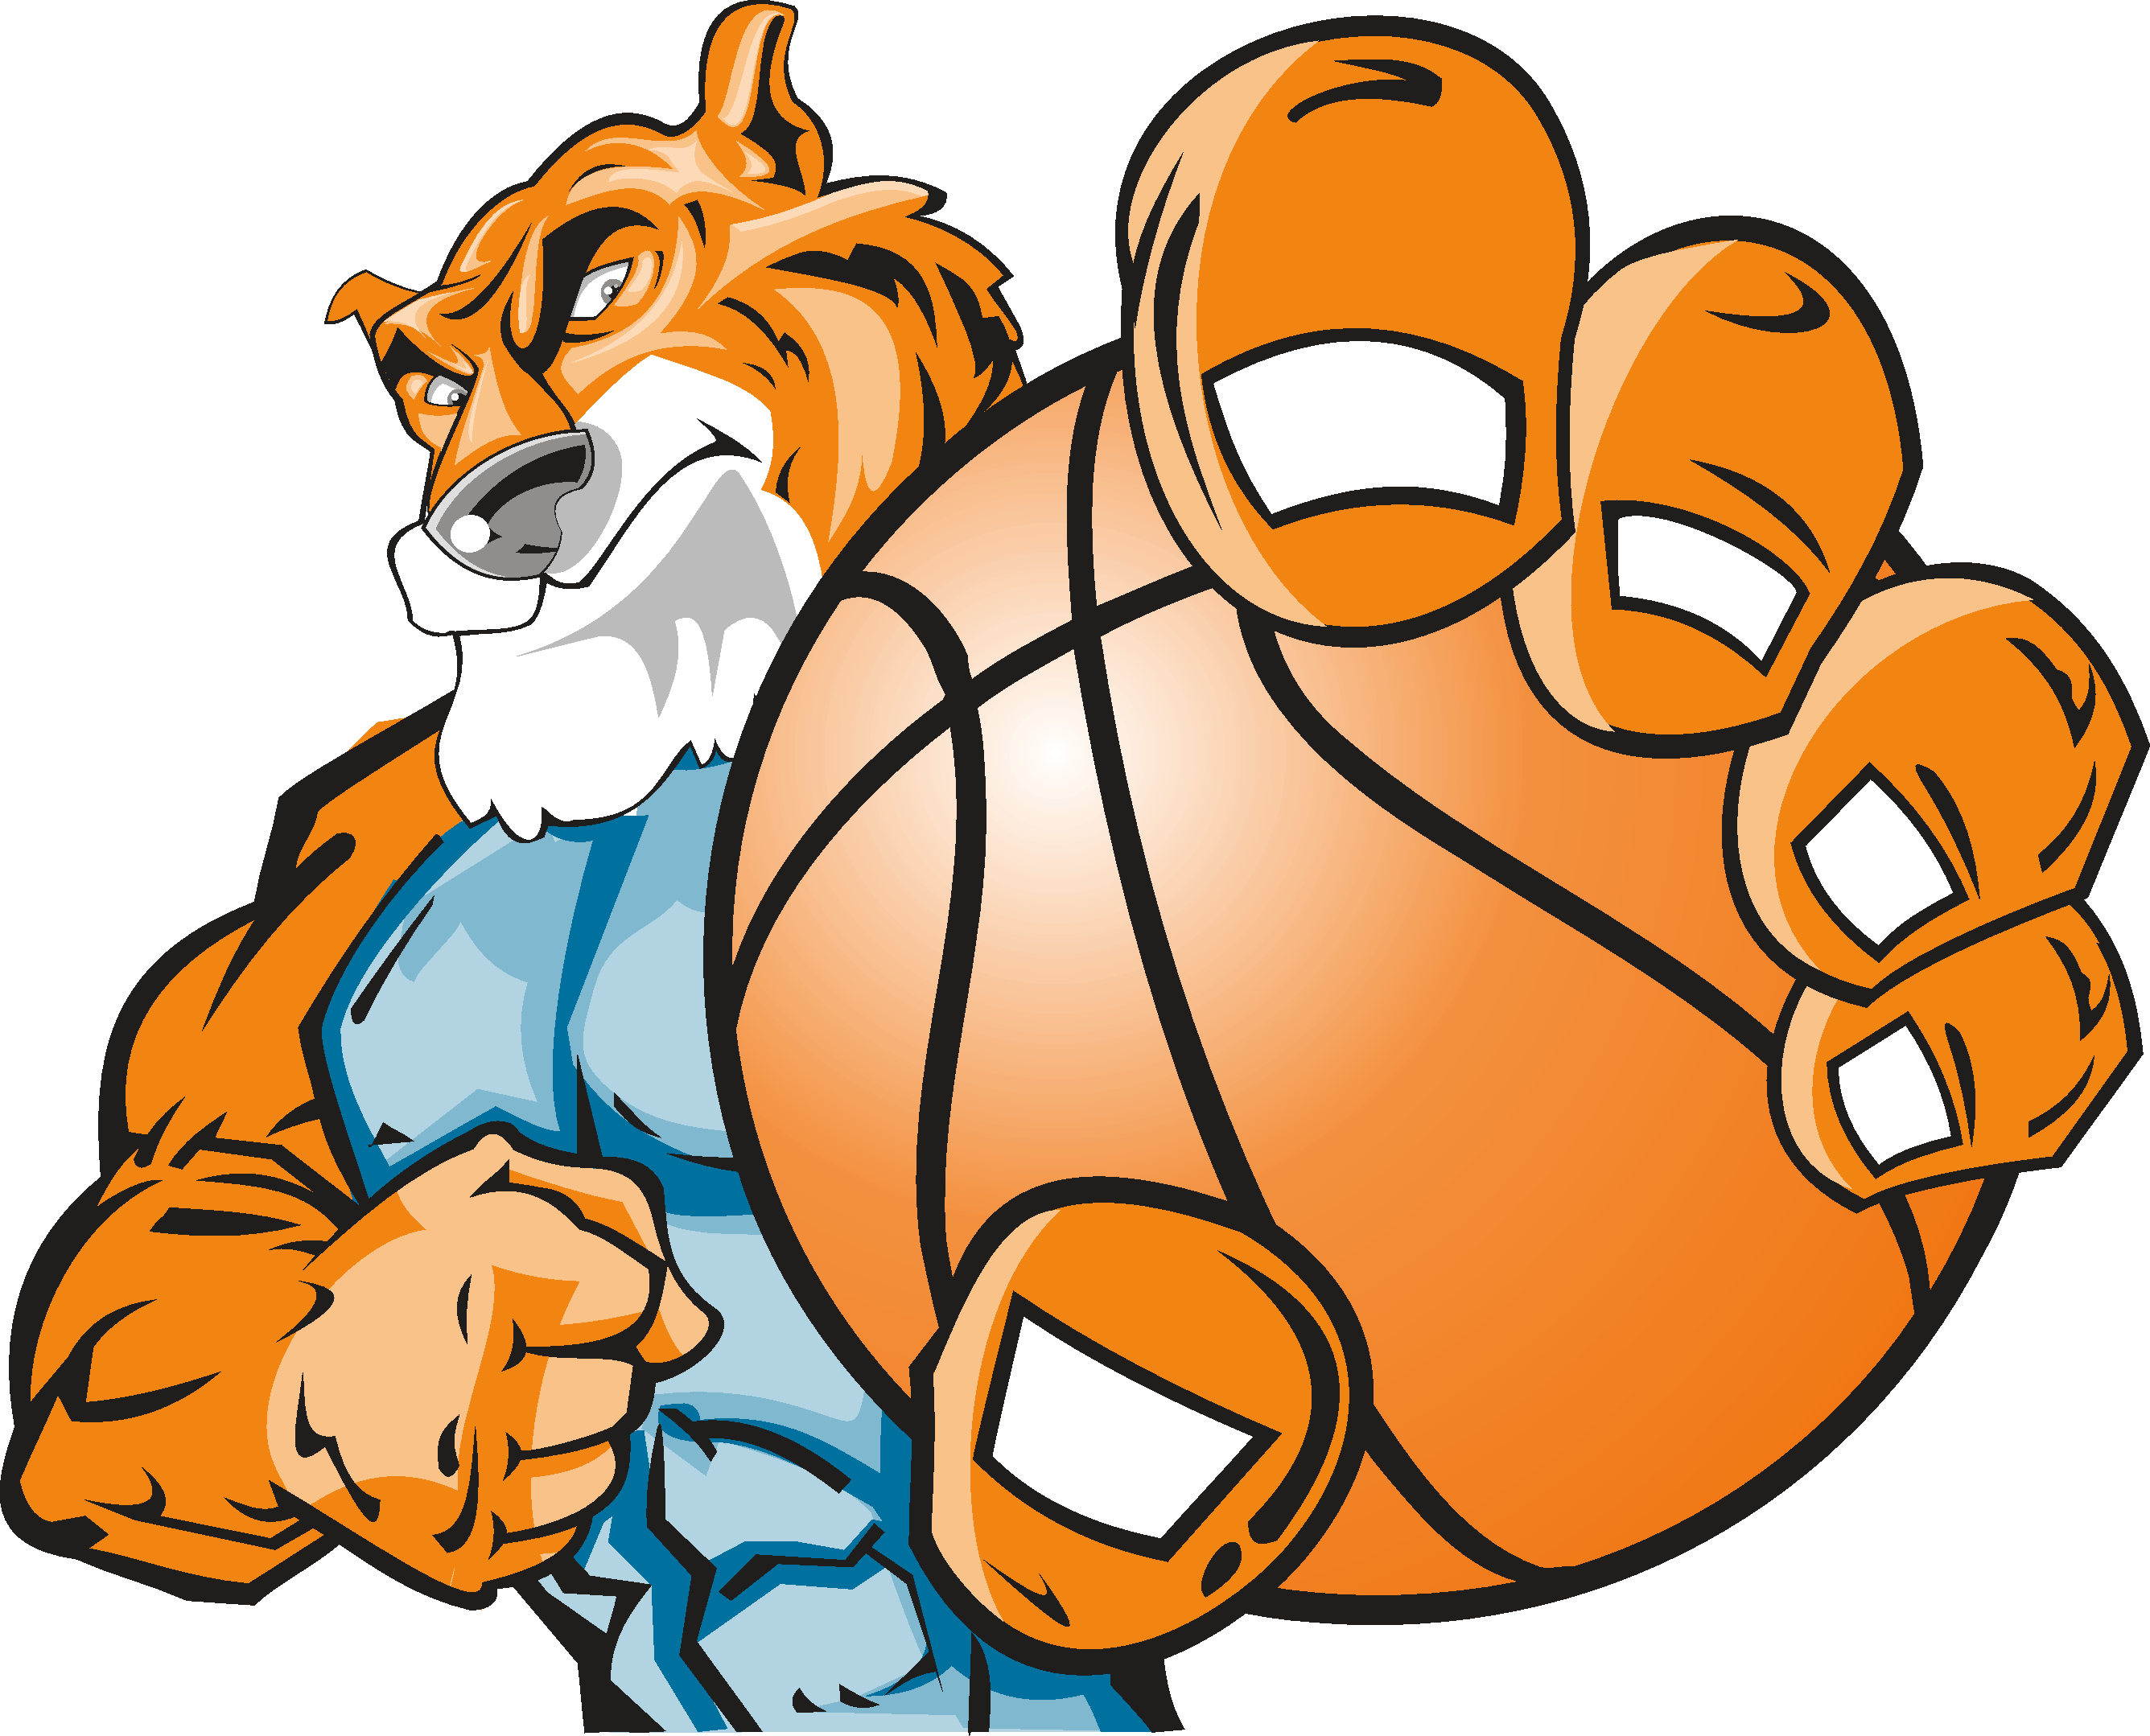 Basketball clipart march madness clip library March Madness Clipart - clipart clip library